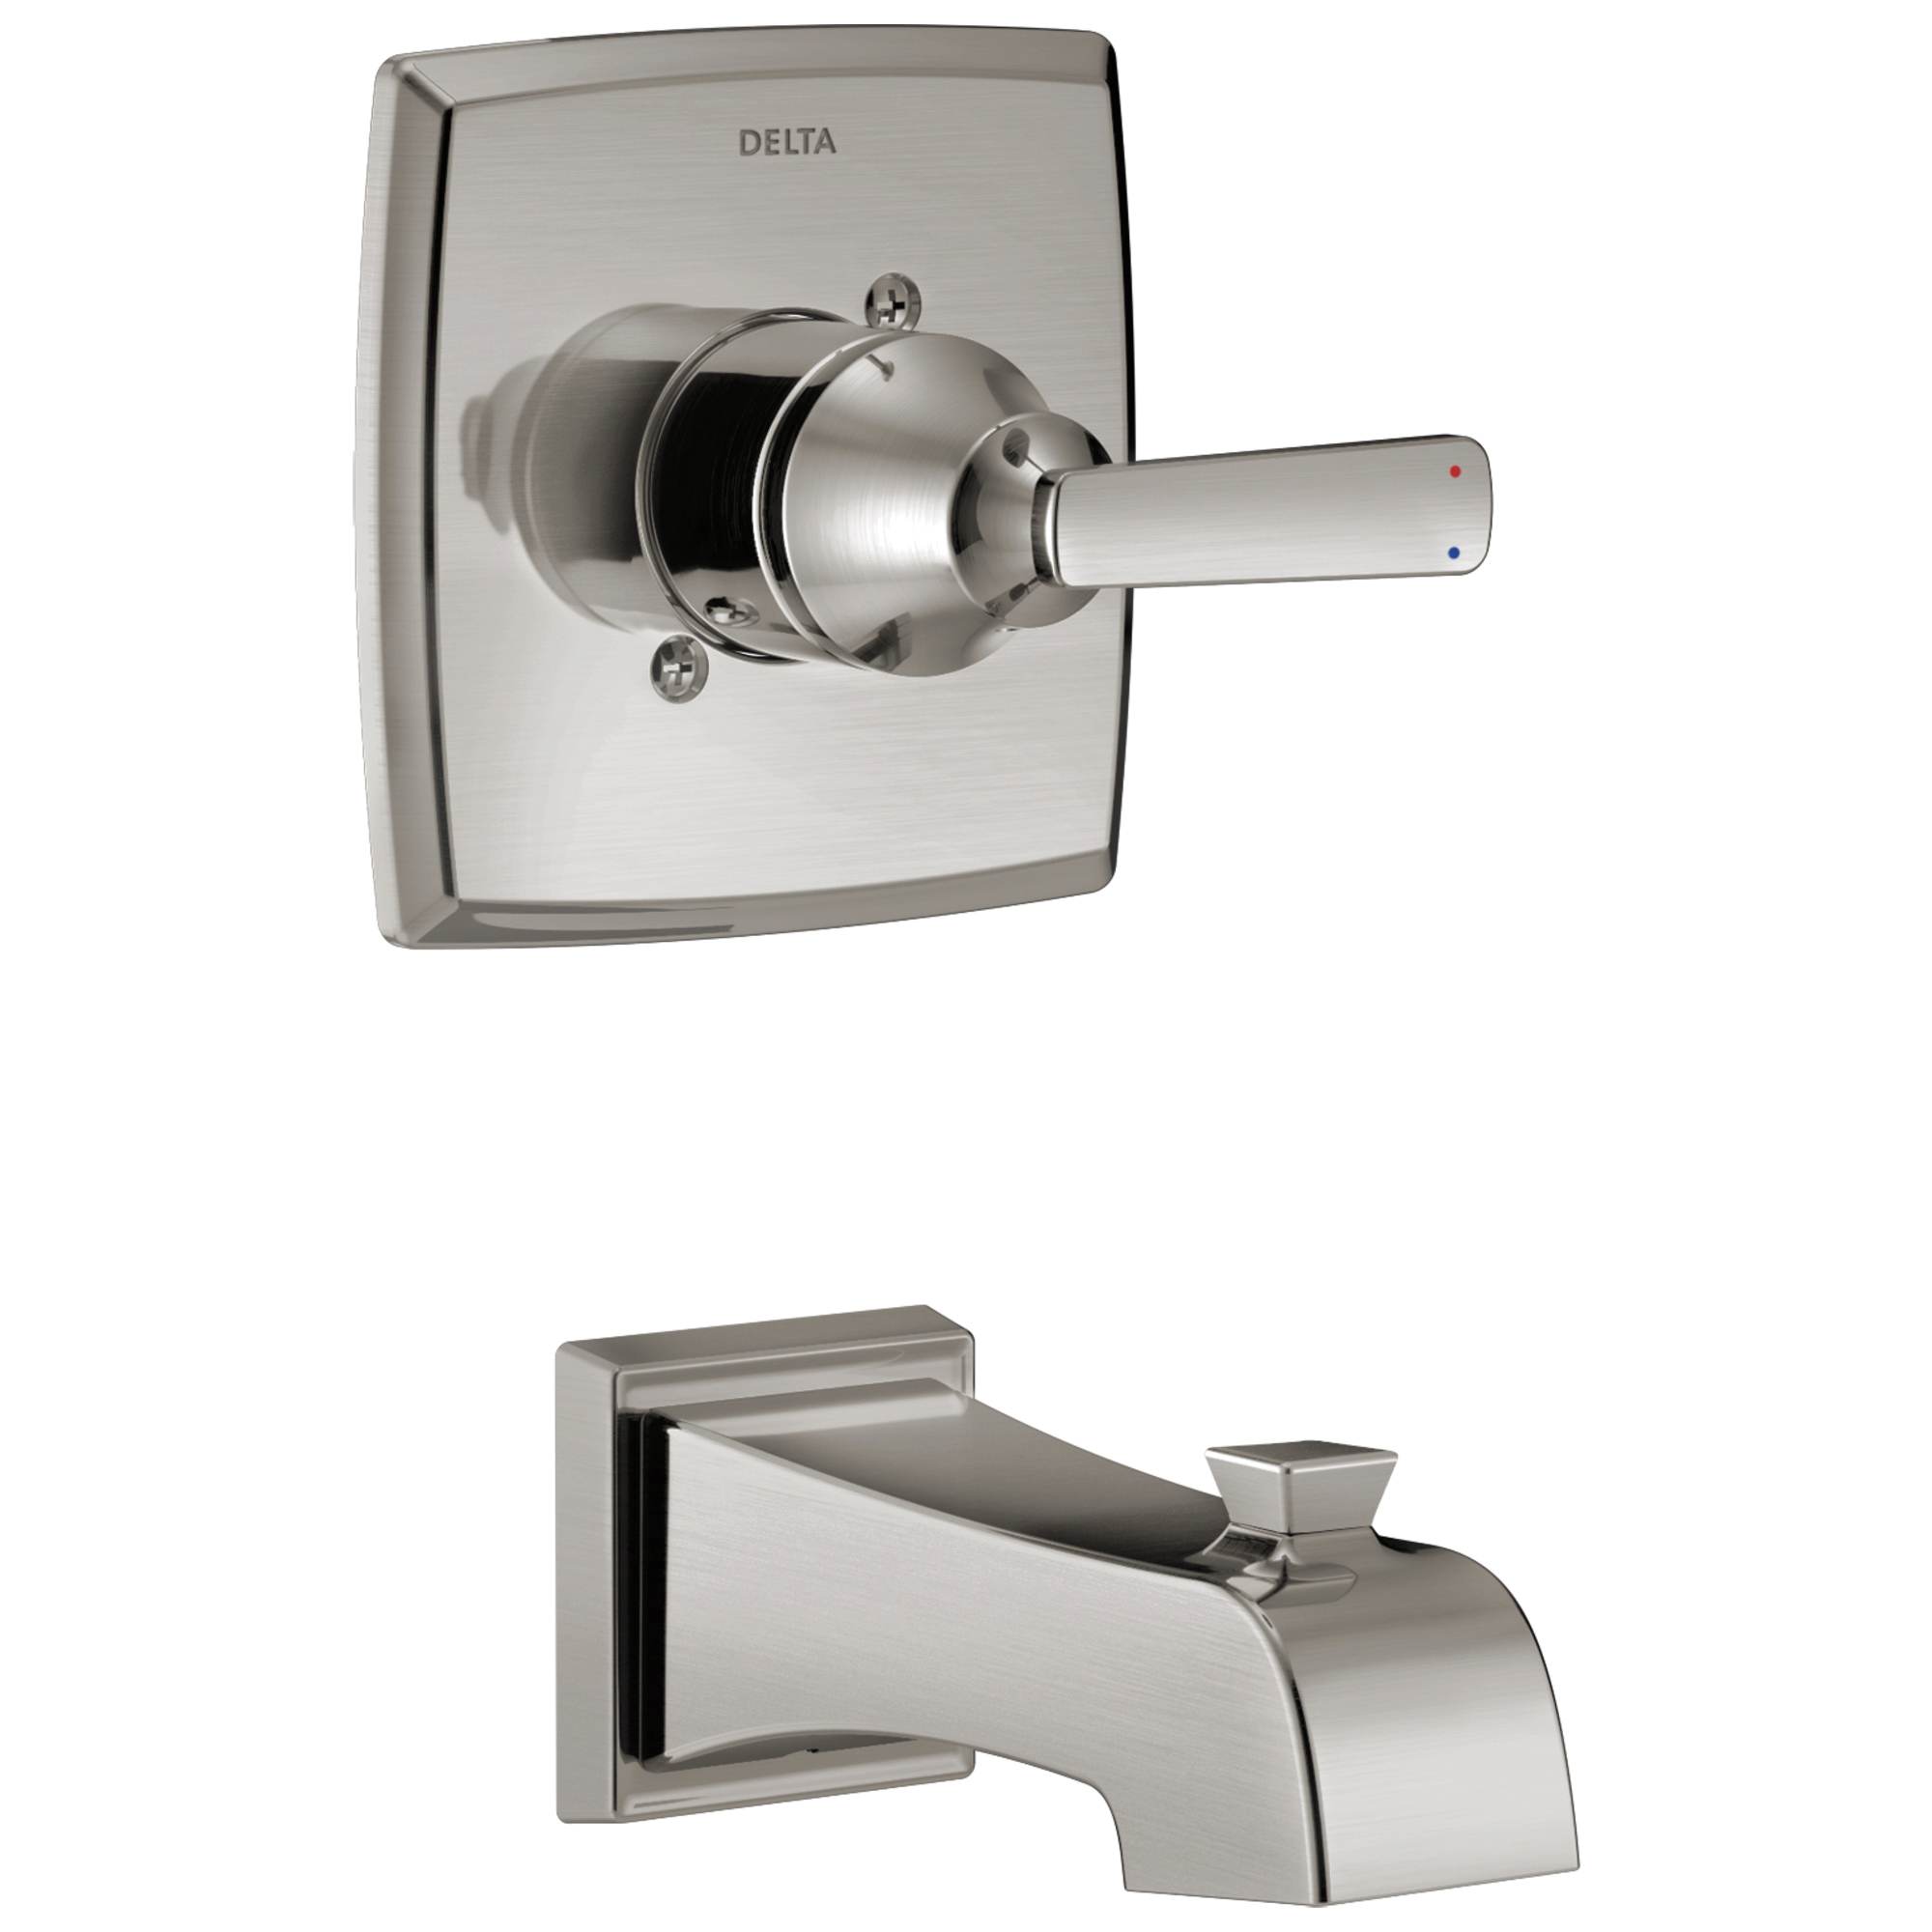 DELTA® T14164-SS Monitor® 14 Ashlyn® 1-Function Wall Mount Tub Trim, Brilliance® Stainless Steel, 1 Handles, Hand Shower Yes/No: No, Domestic, Commercial